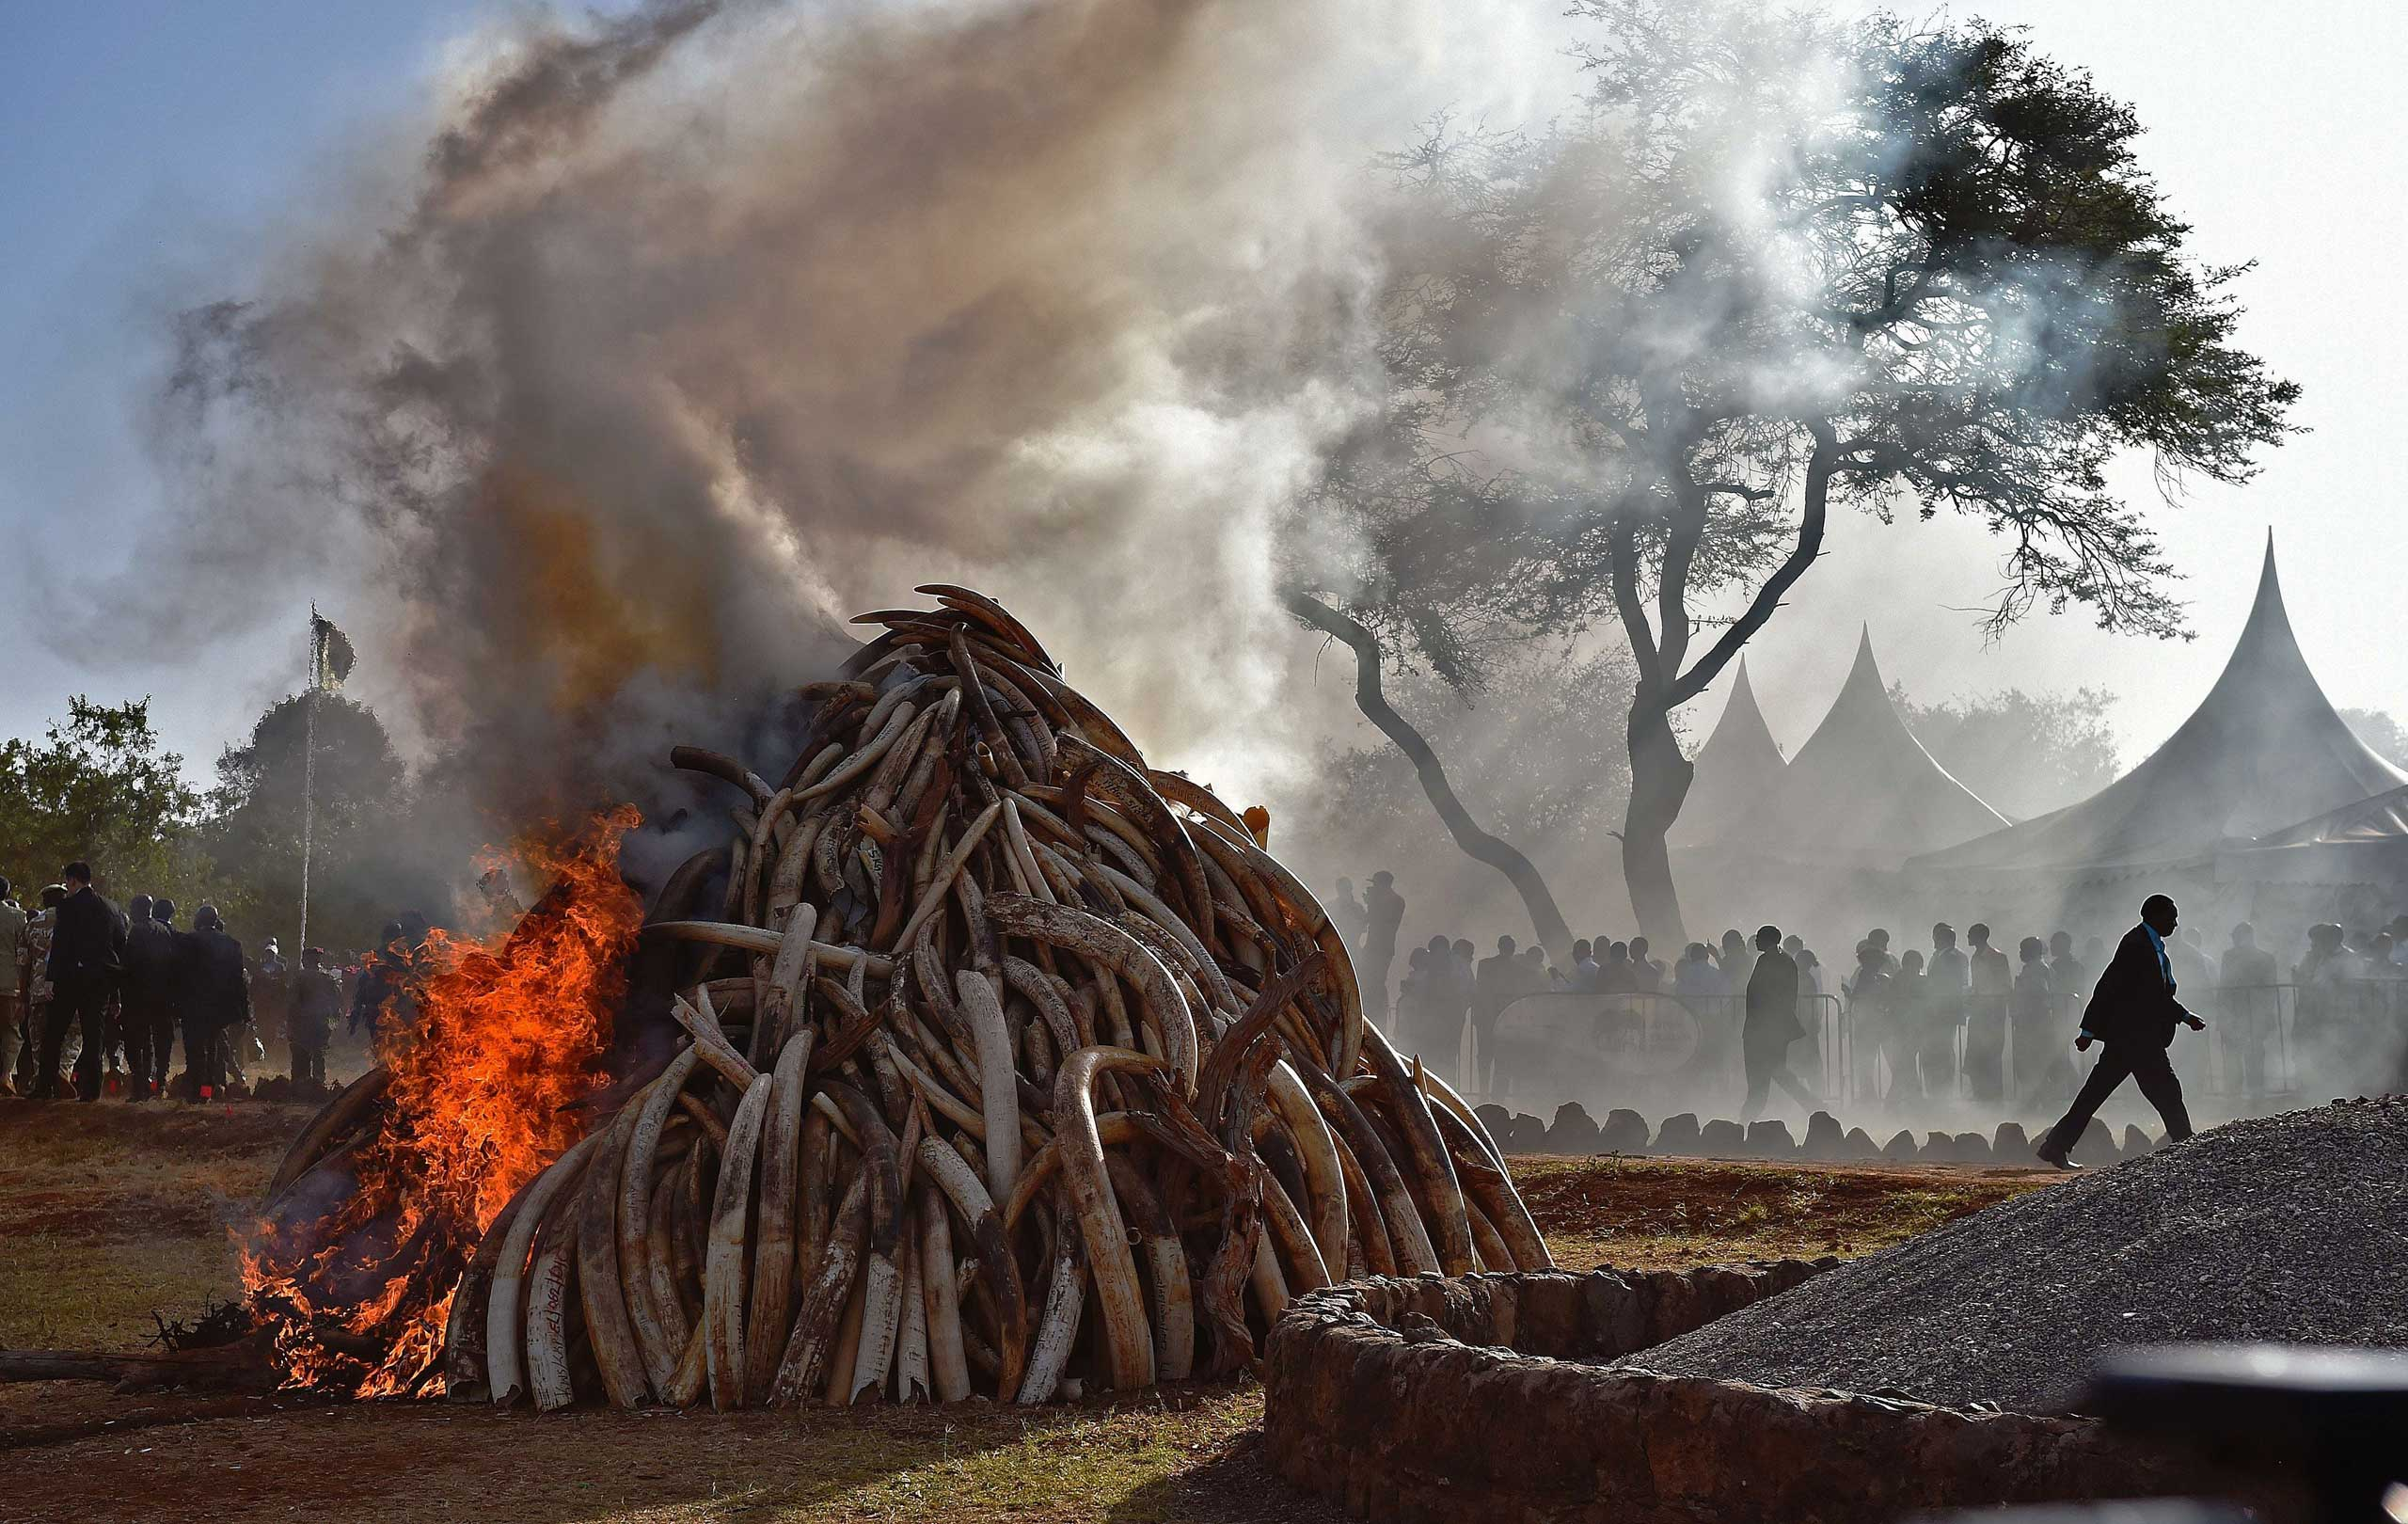 People stand near a burning pile of 15 tons of elephant ivory seized in Nairobi National Park in Nairobi, Kenya. Kenyan President Uhuru Kenyatta set fire to a giant pile of elephant ivory, vowing to destroy the country's entire stockpile of illegal tusks by the year's end. The 15 tons destroyed was worth some $30 million on the black market and represented up to 1,500 slaughtered elephants. It dwarfs the ivory burned by previous Kenyan leaders. March 3, 2015.